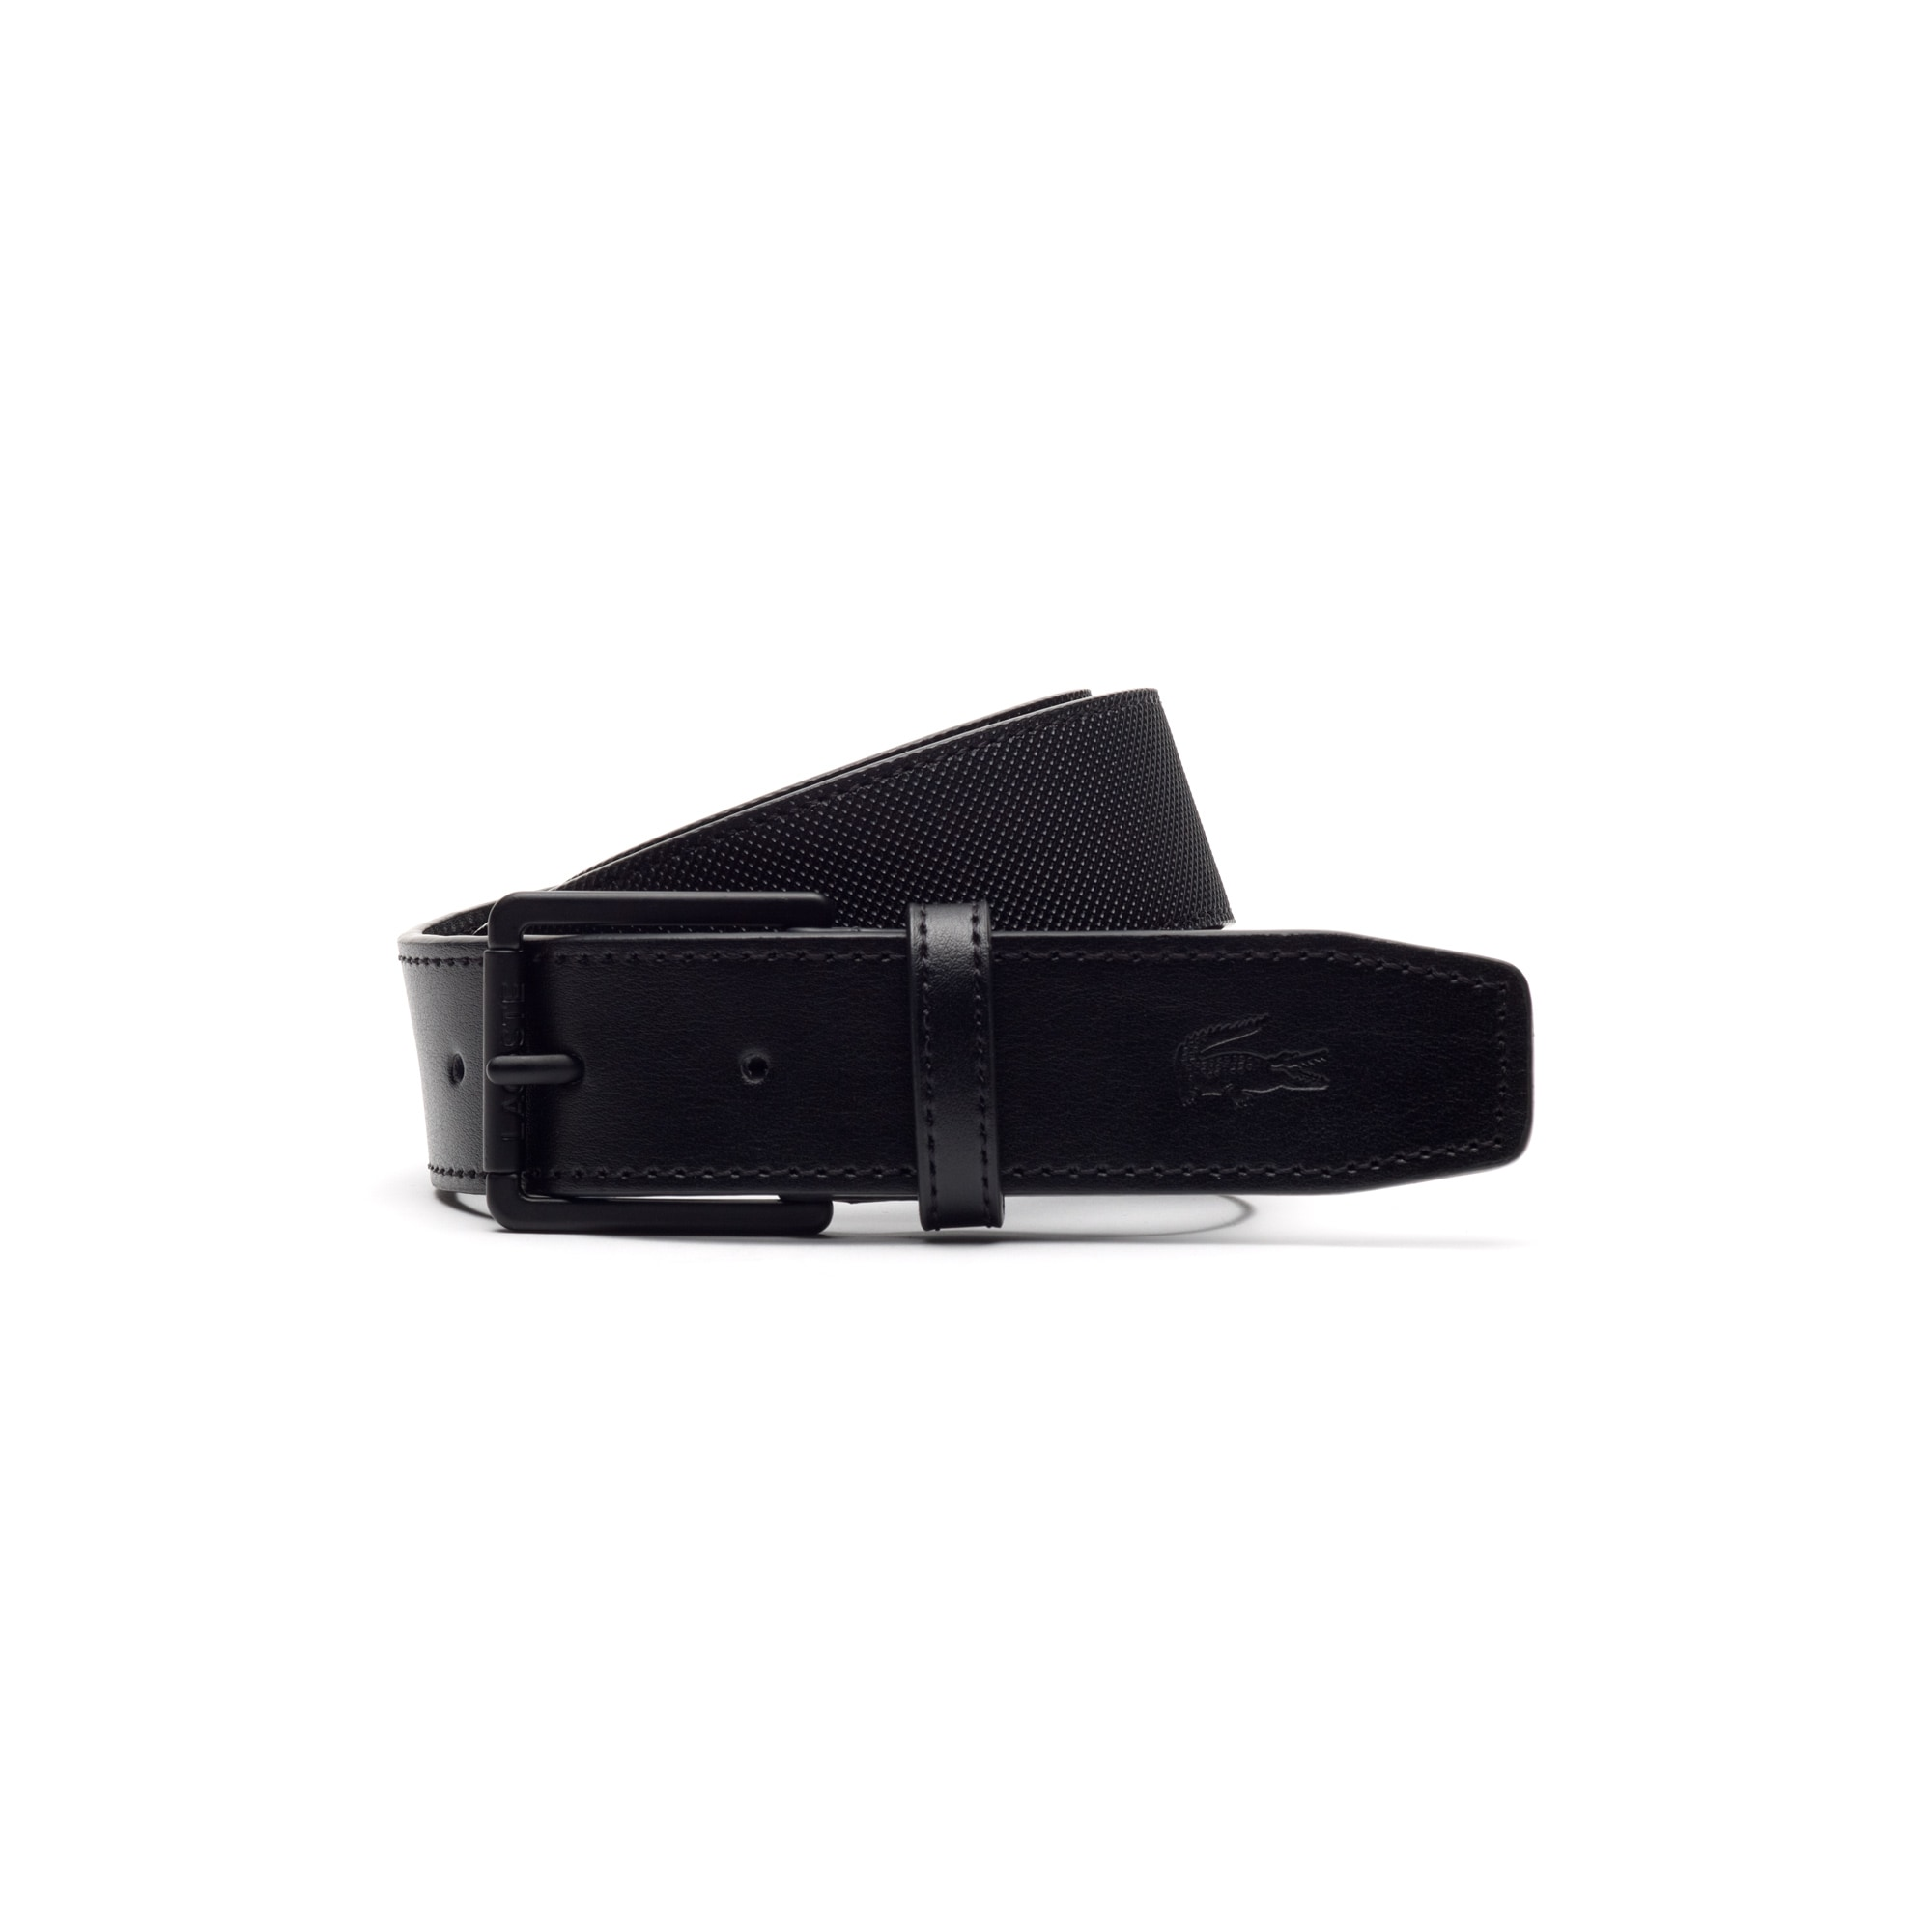 e0ec383891 Men's Classic belt in monochrome petit piqué embossed leather | LACOSTE